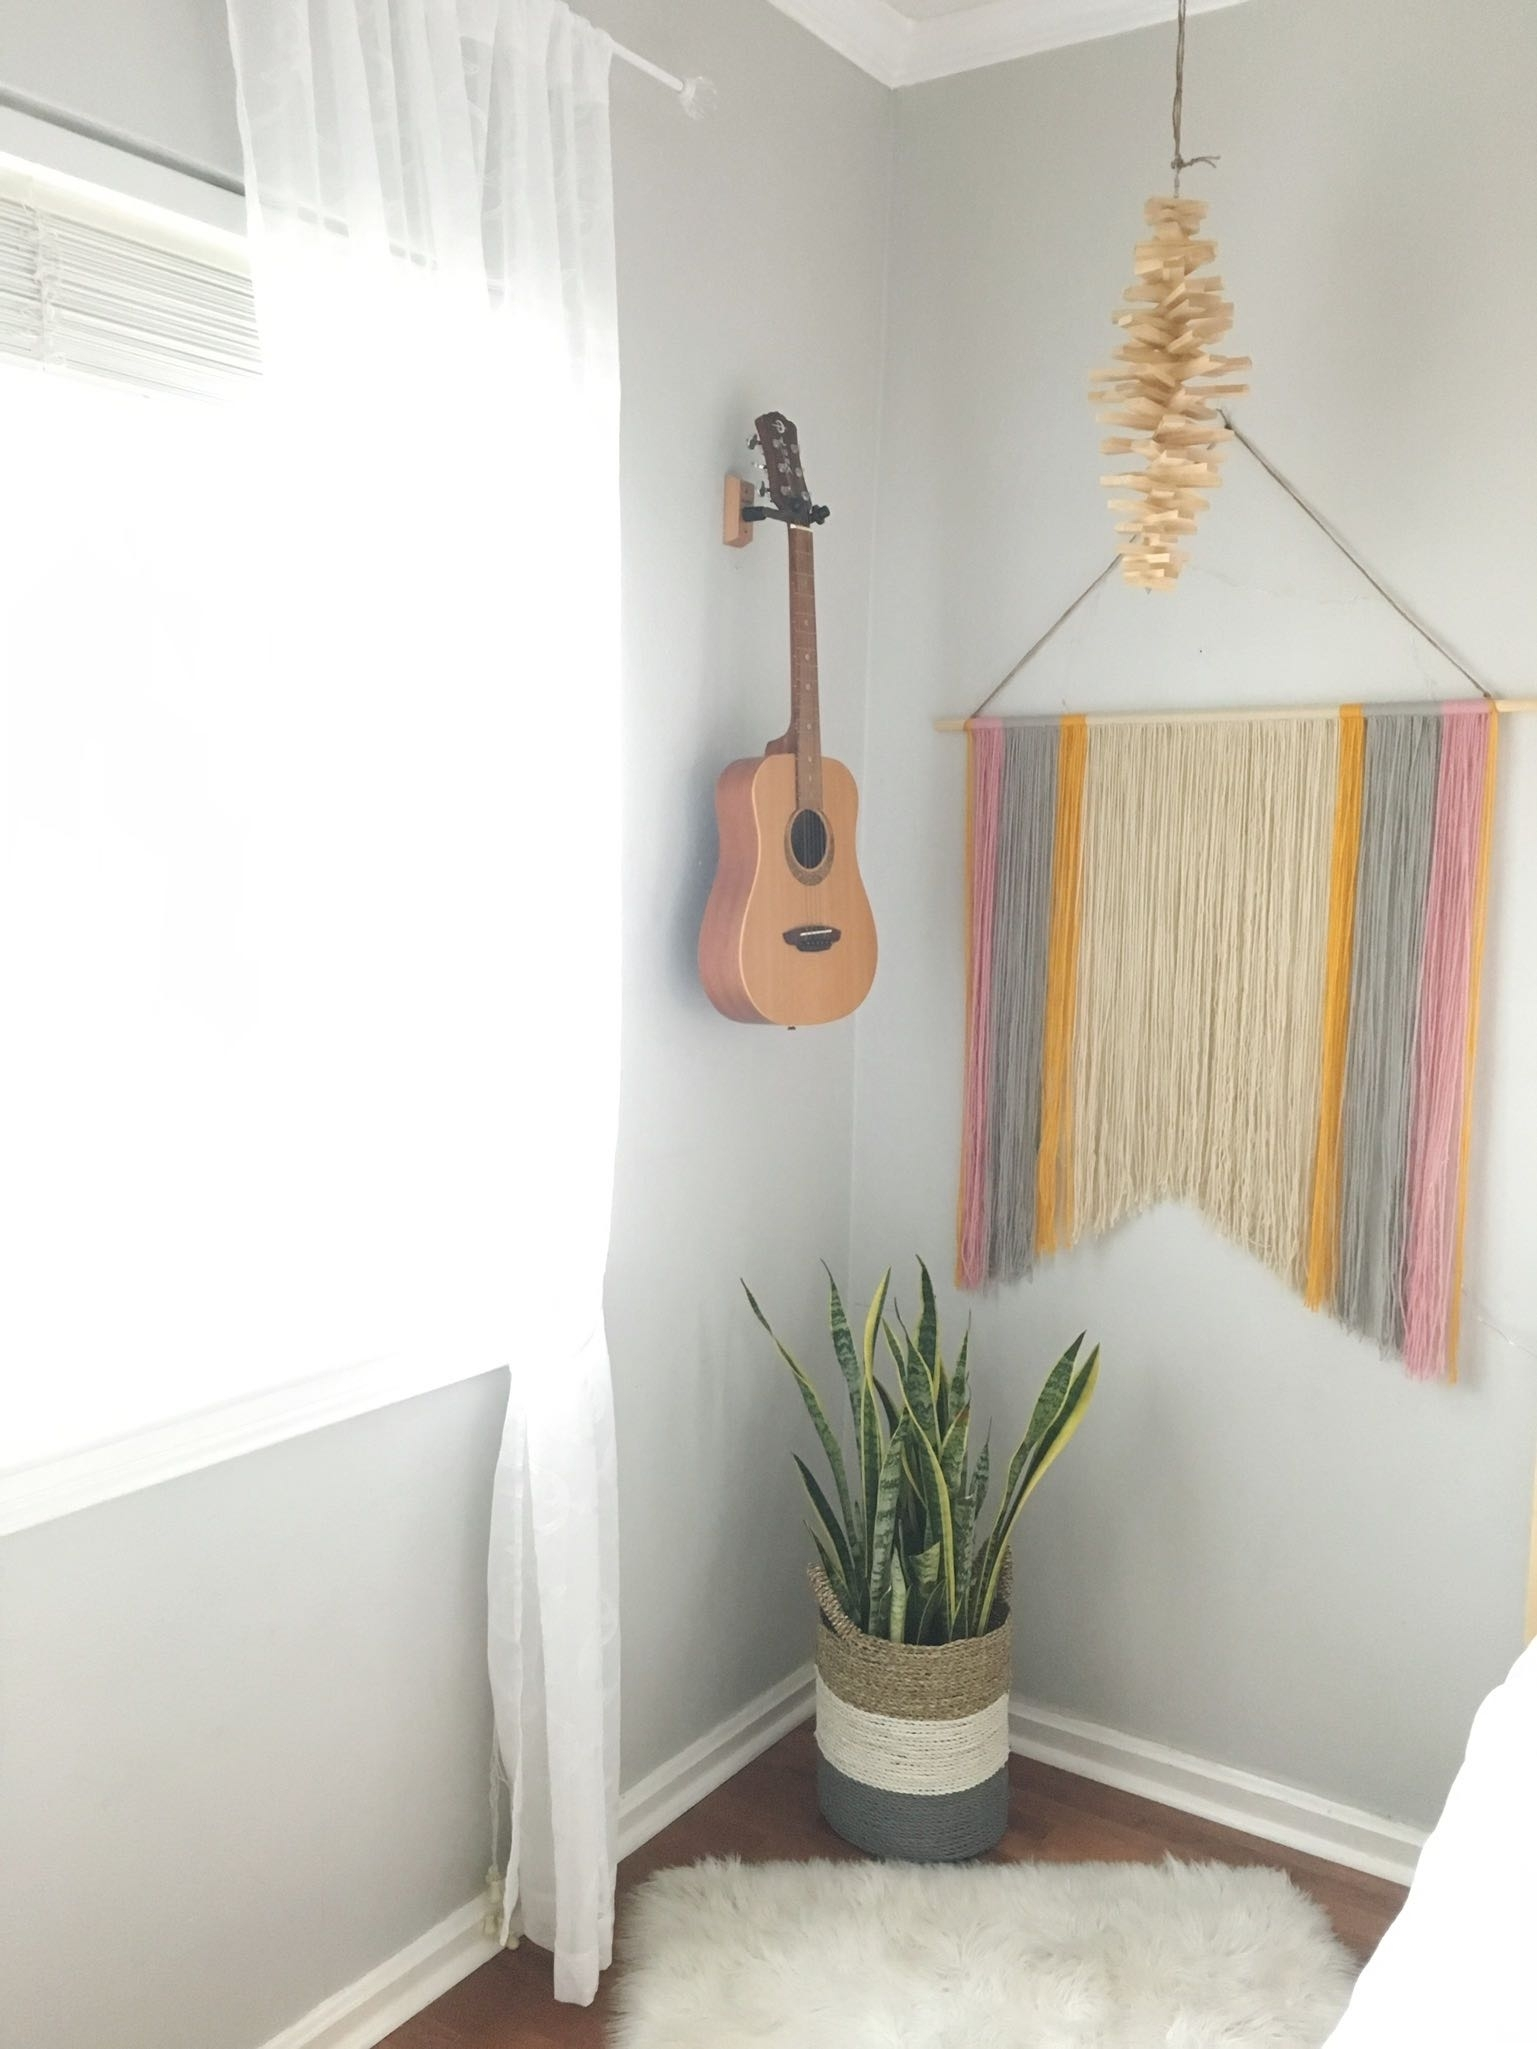 Simple Diy Yarn Wall Art For $10 (or Less) | That Homebird Life With Yarn Wall Art (View 7 of 20)